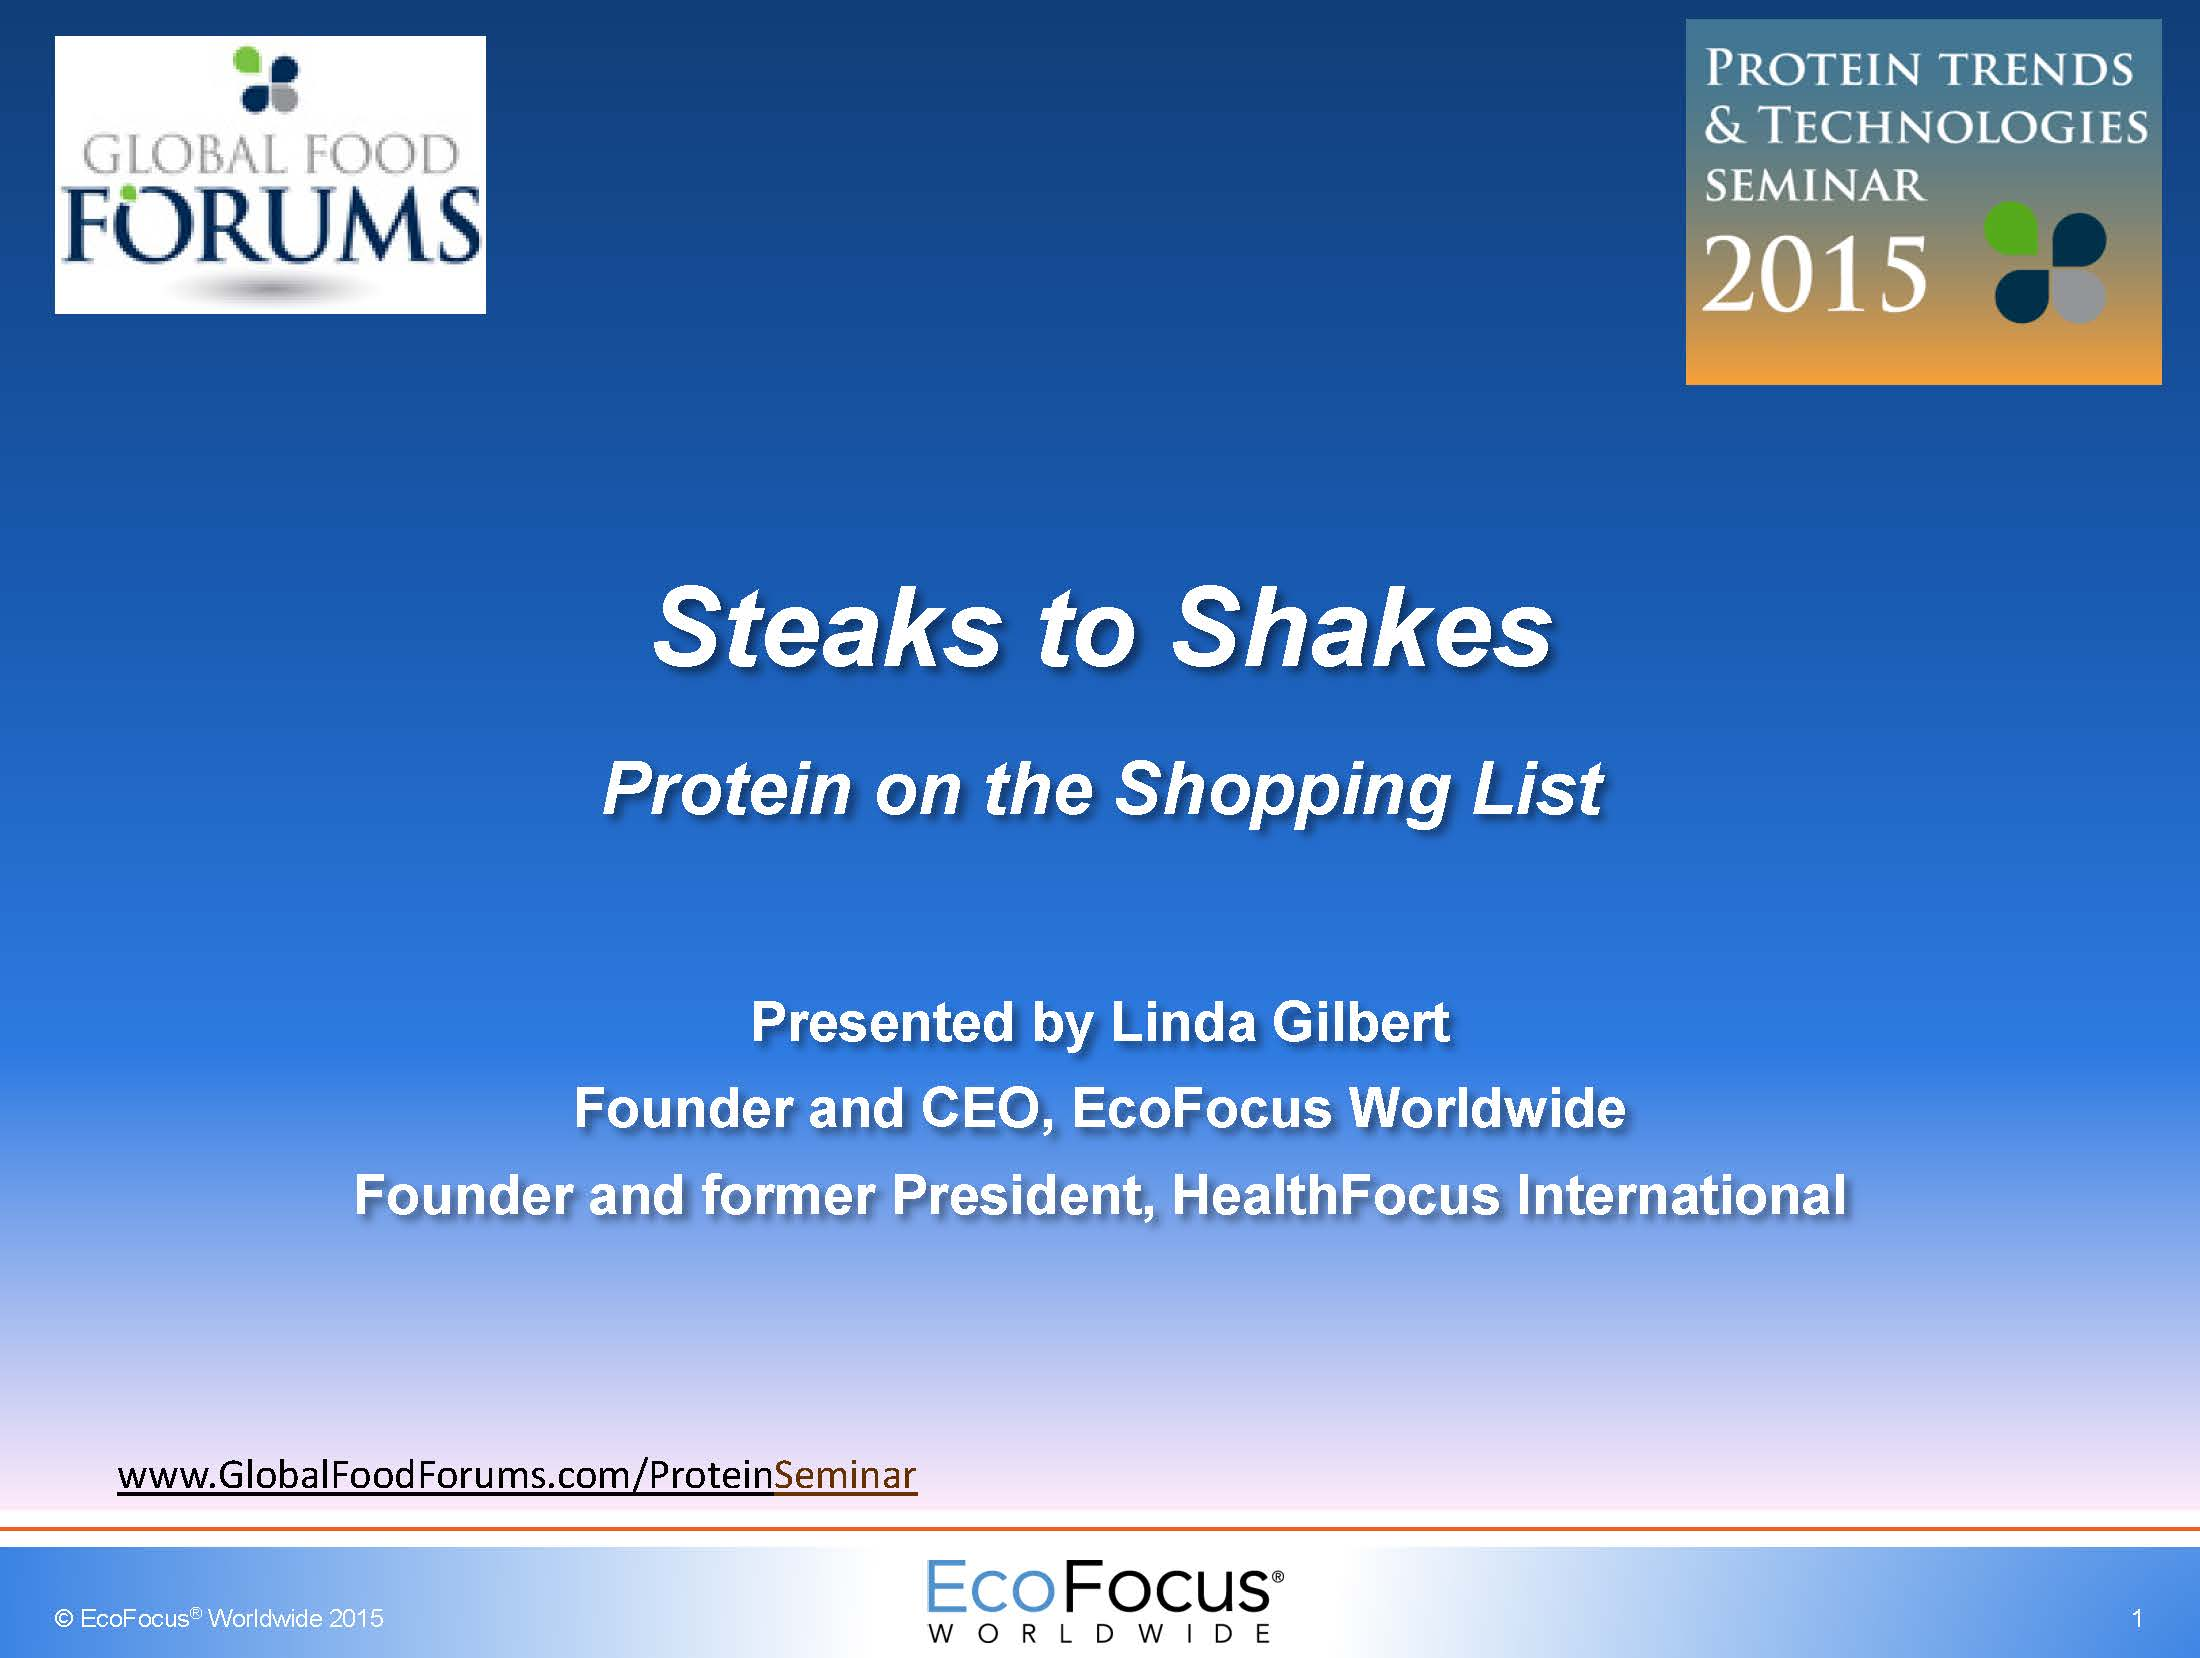 Linda Gilbert Shopping for Protein 2015 PTT